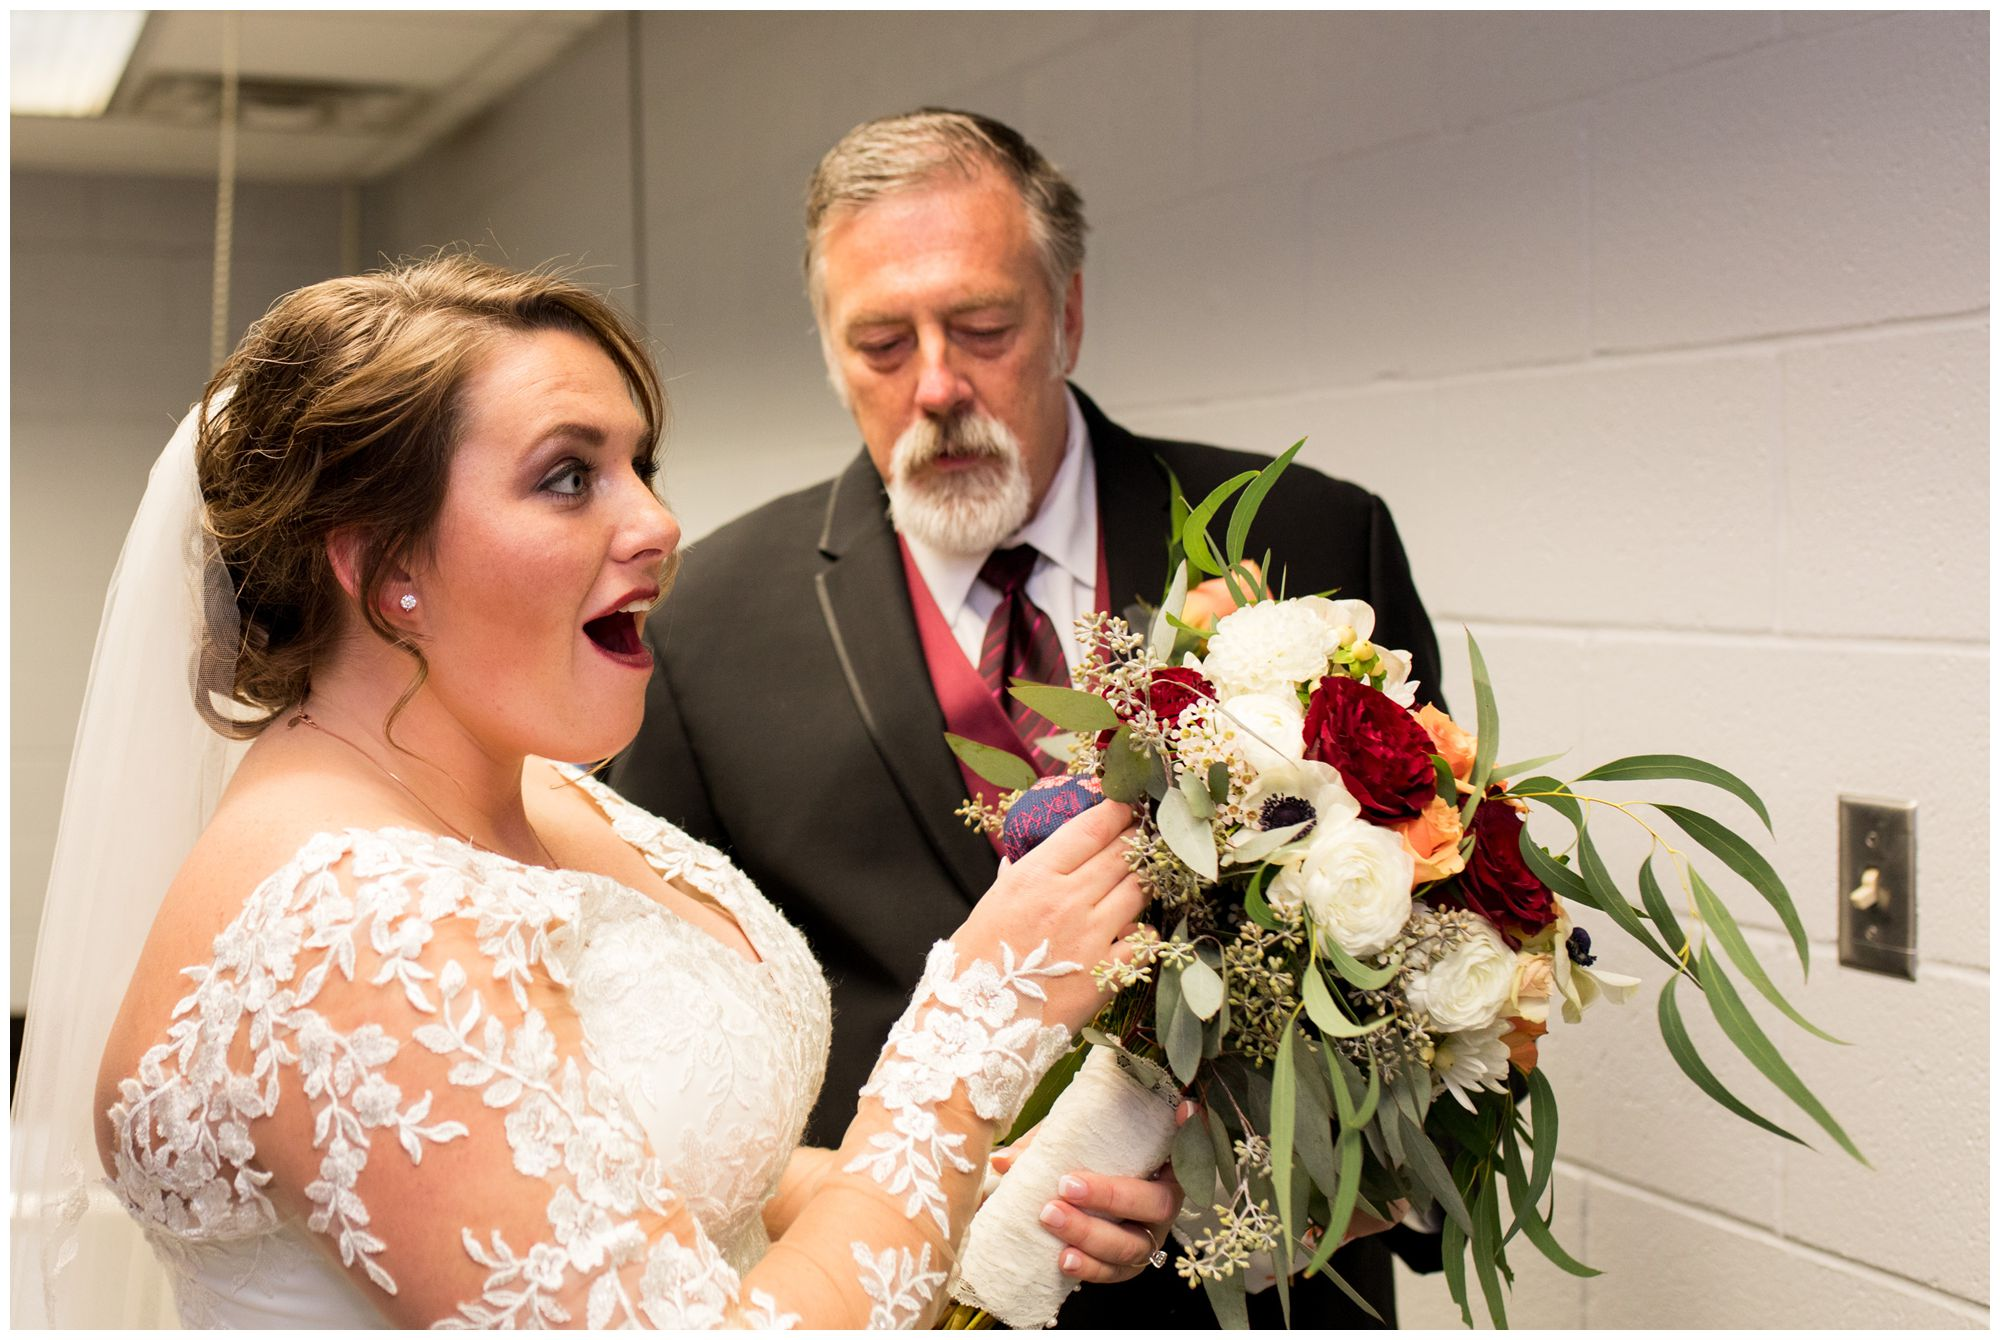 father of bride surprises bride with cross-stitched gift for wedding